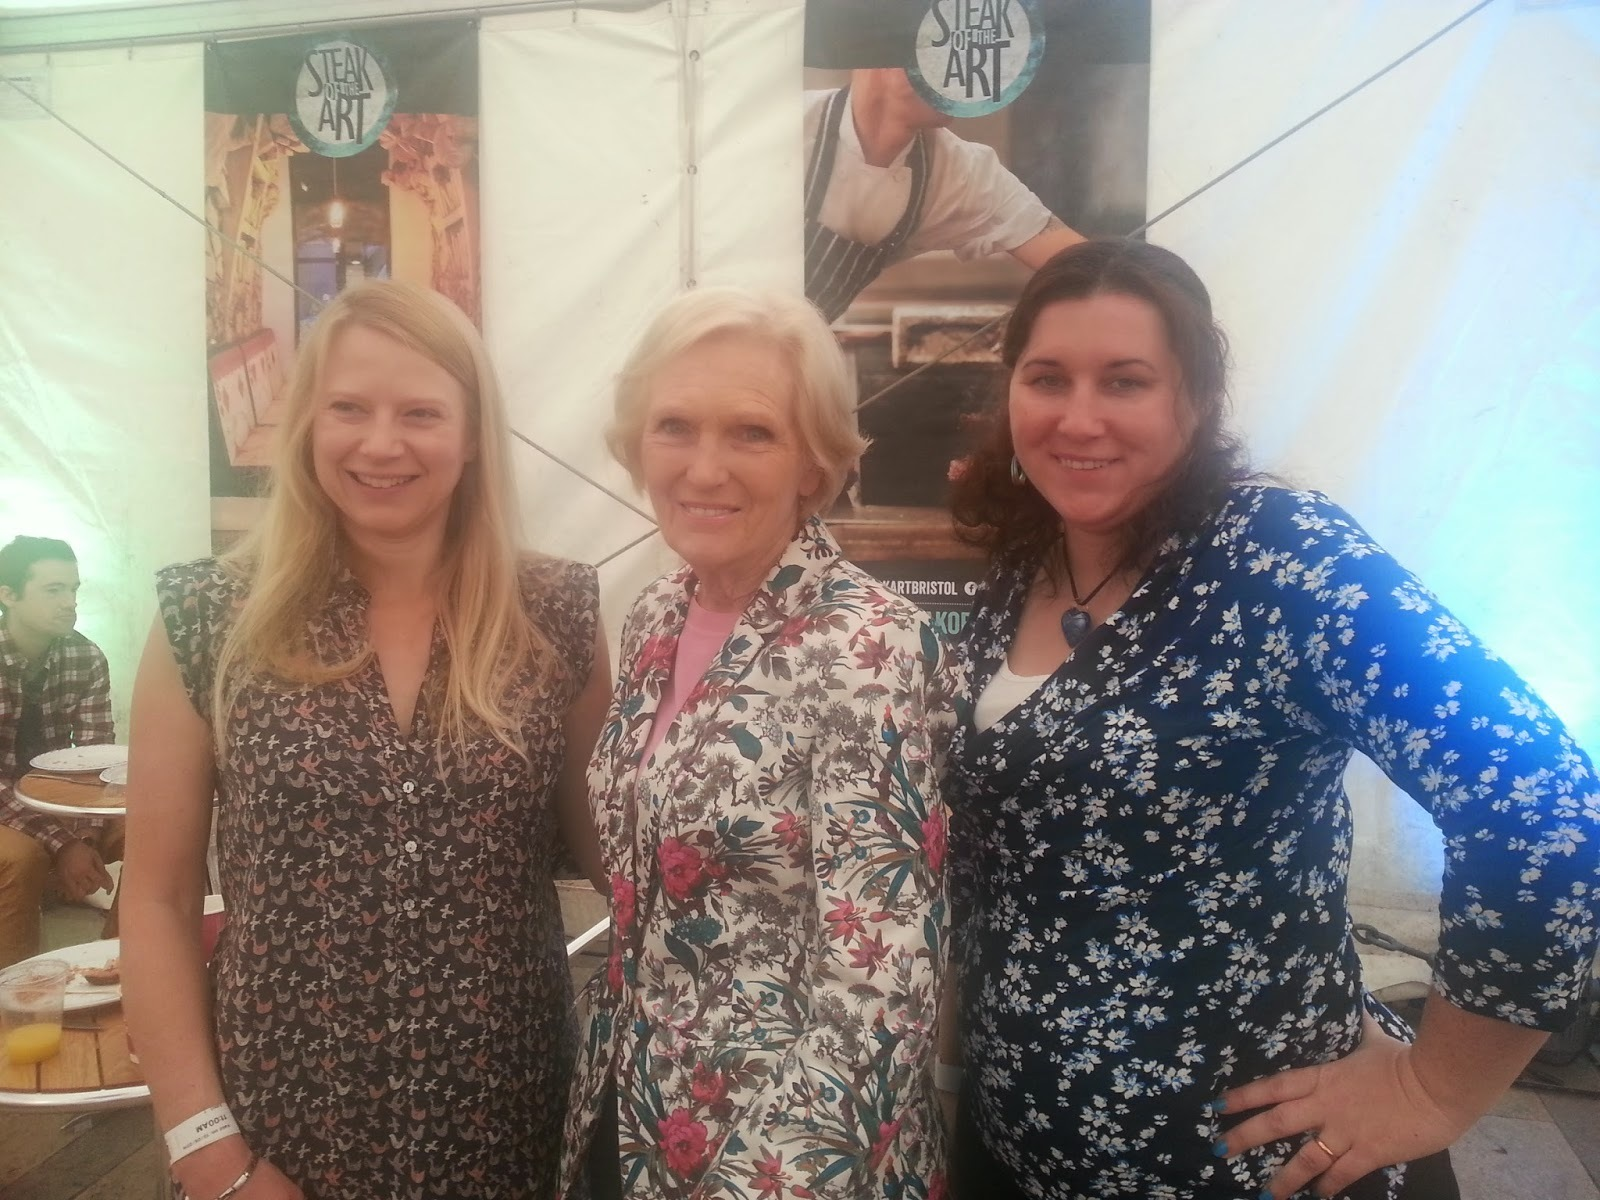 Meeting Mary Berry...